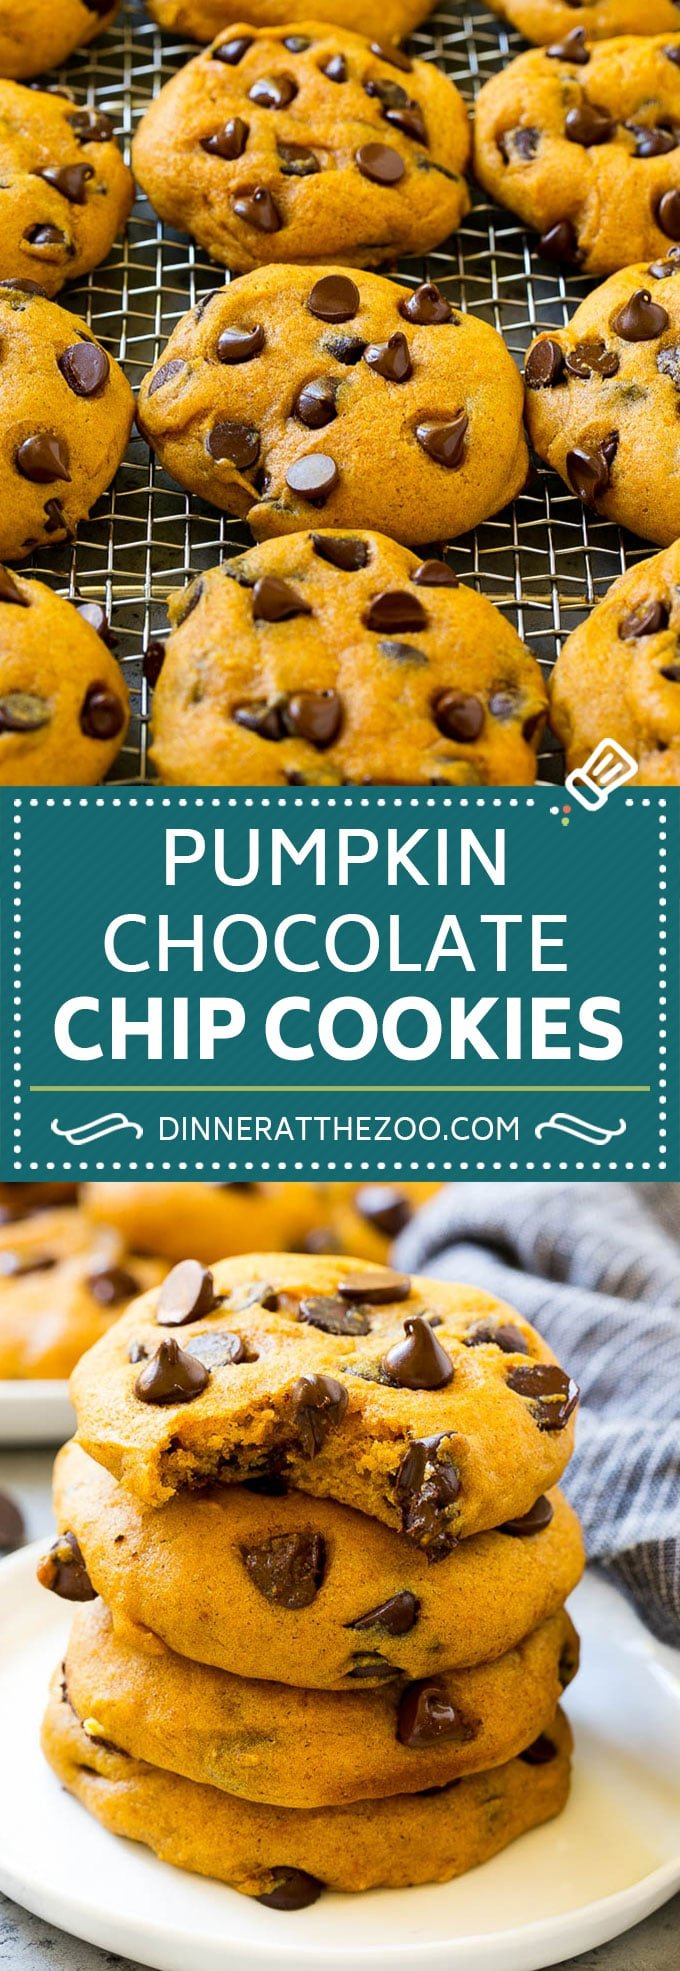 Pumpkin Chocolate Chip Cookies Recipe | Pumpkin Cookies | Pumpkin Chocolate Cookies #pumpkin #cookies #chocolate #baking #fall #dinneratthezoo #dessert